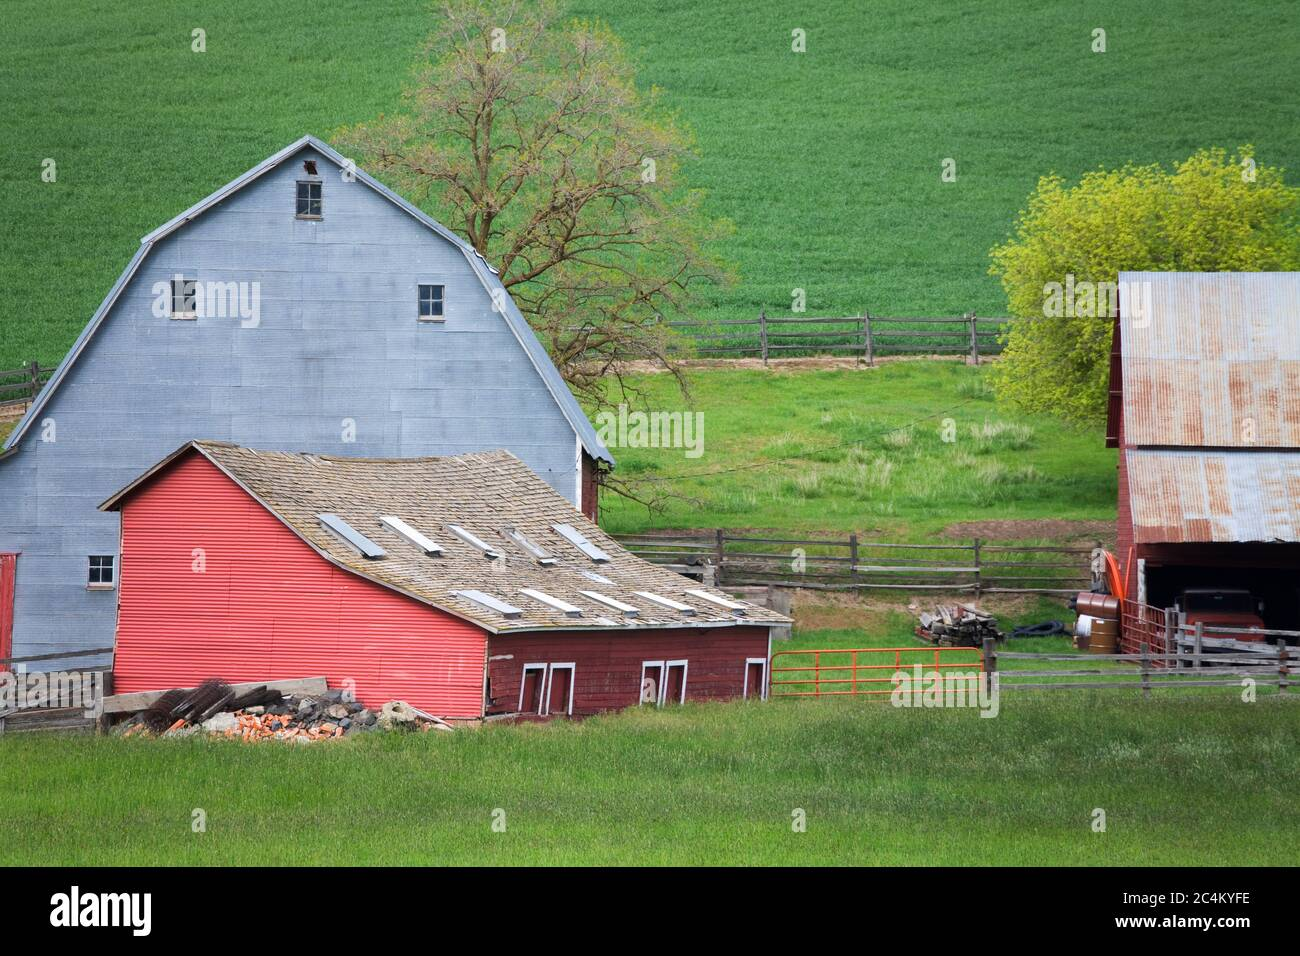 near pullman washington state palouse high resolution stock photography and images alamy alamy